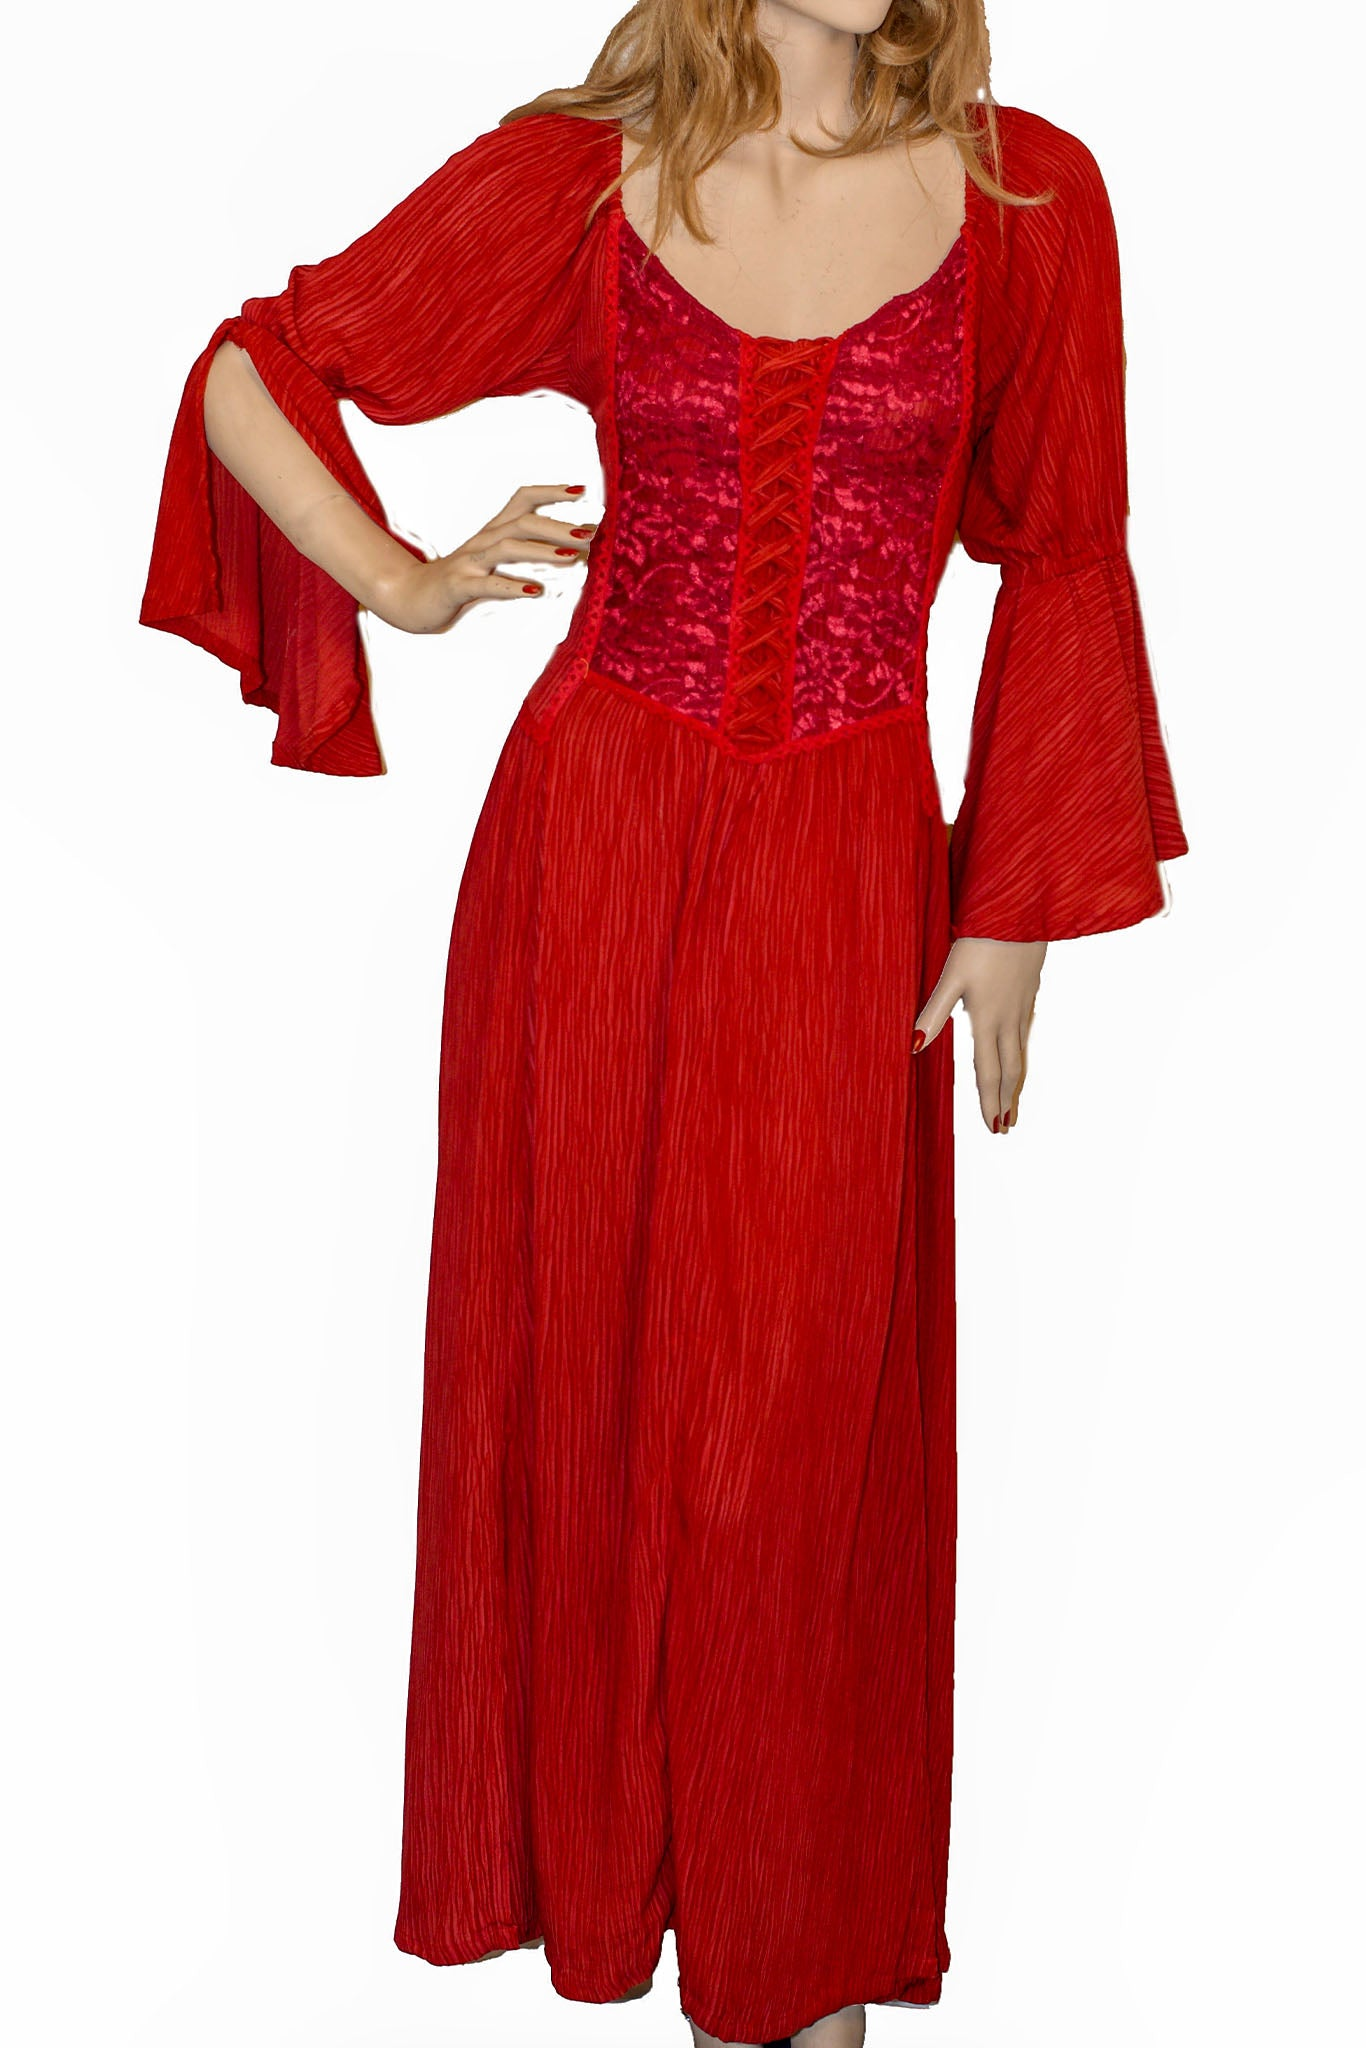 Renaissance Dress Victorian Dress Red